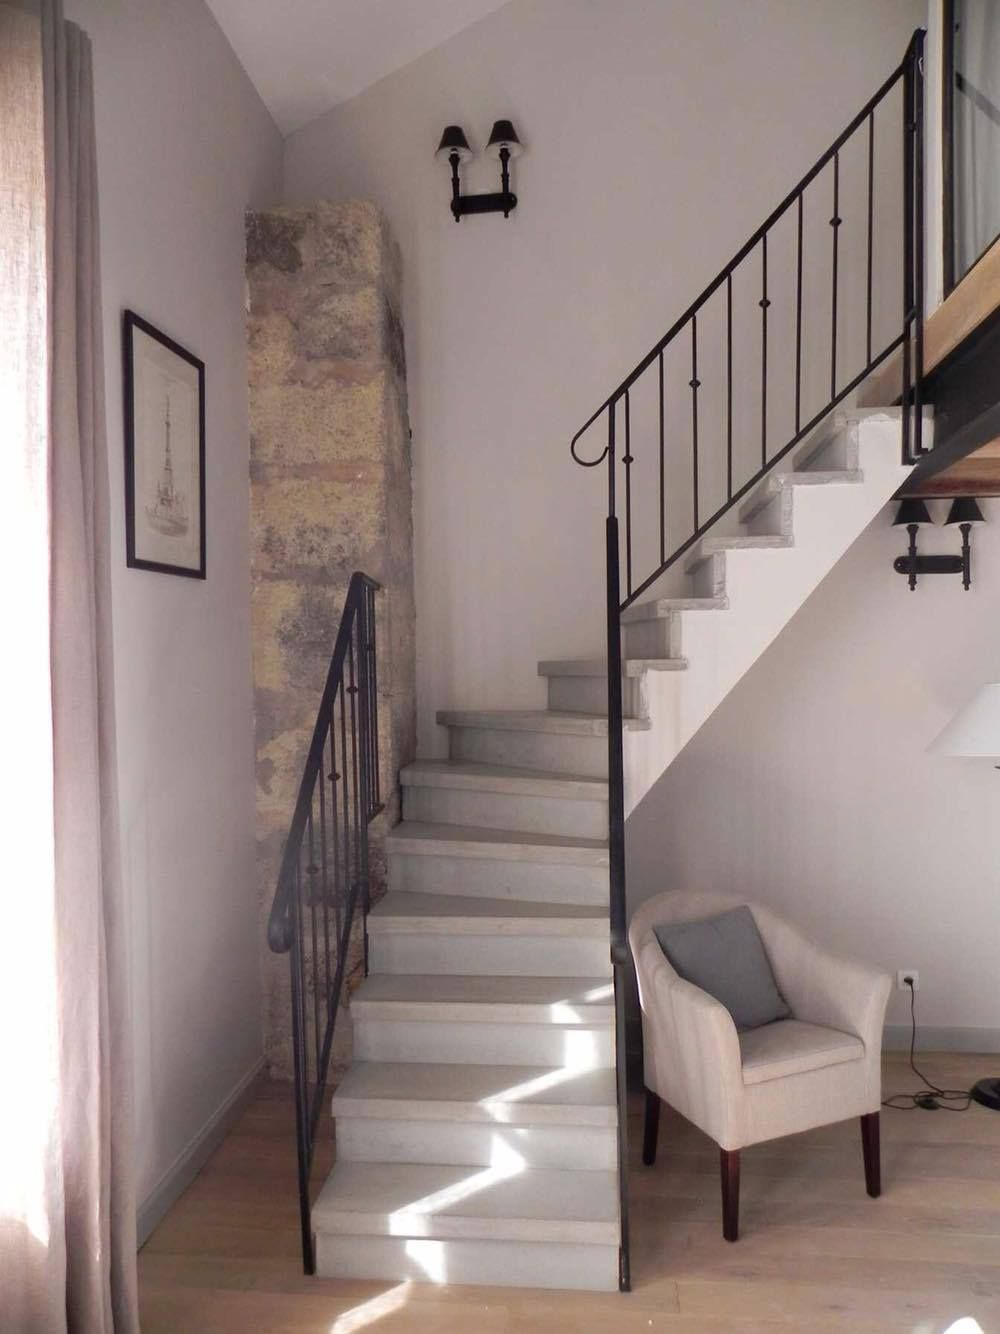 escalier b ton gris 1 4 tournant nez de marche carr garde corps m tallique escalier. Black Bedroom Furniture Sets. Home Design Ideas